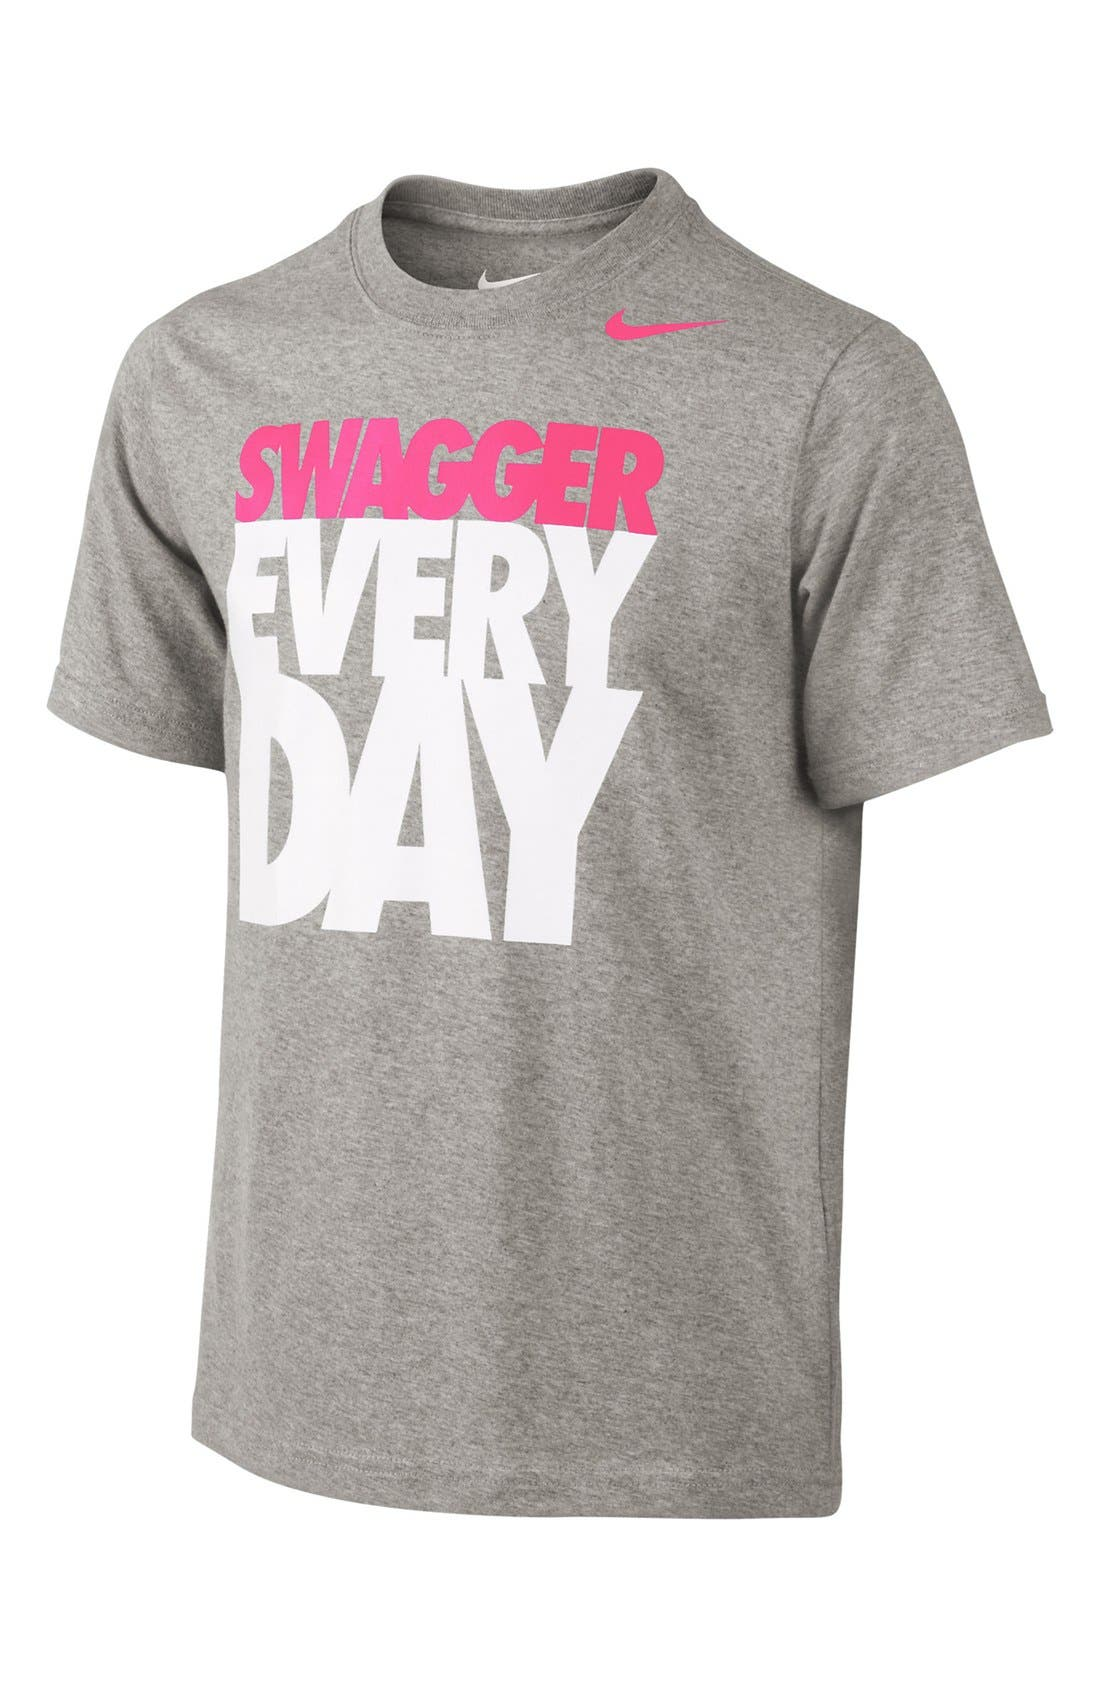 Alternate Image 1 Selected - Nike 'Swagger Every Day' T-Shirt (Big Boys)